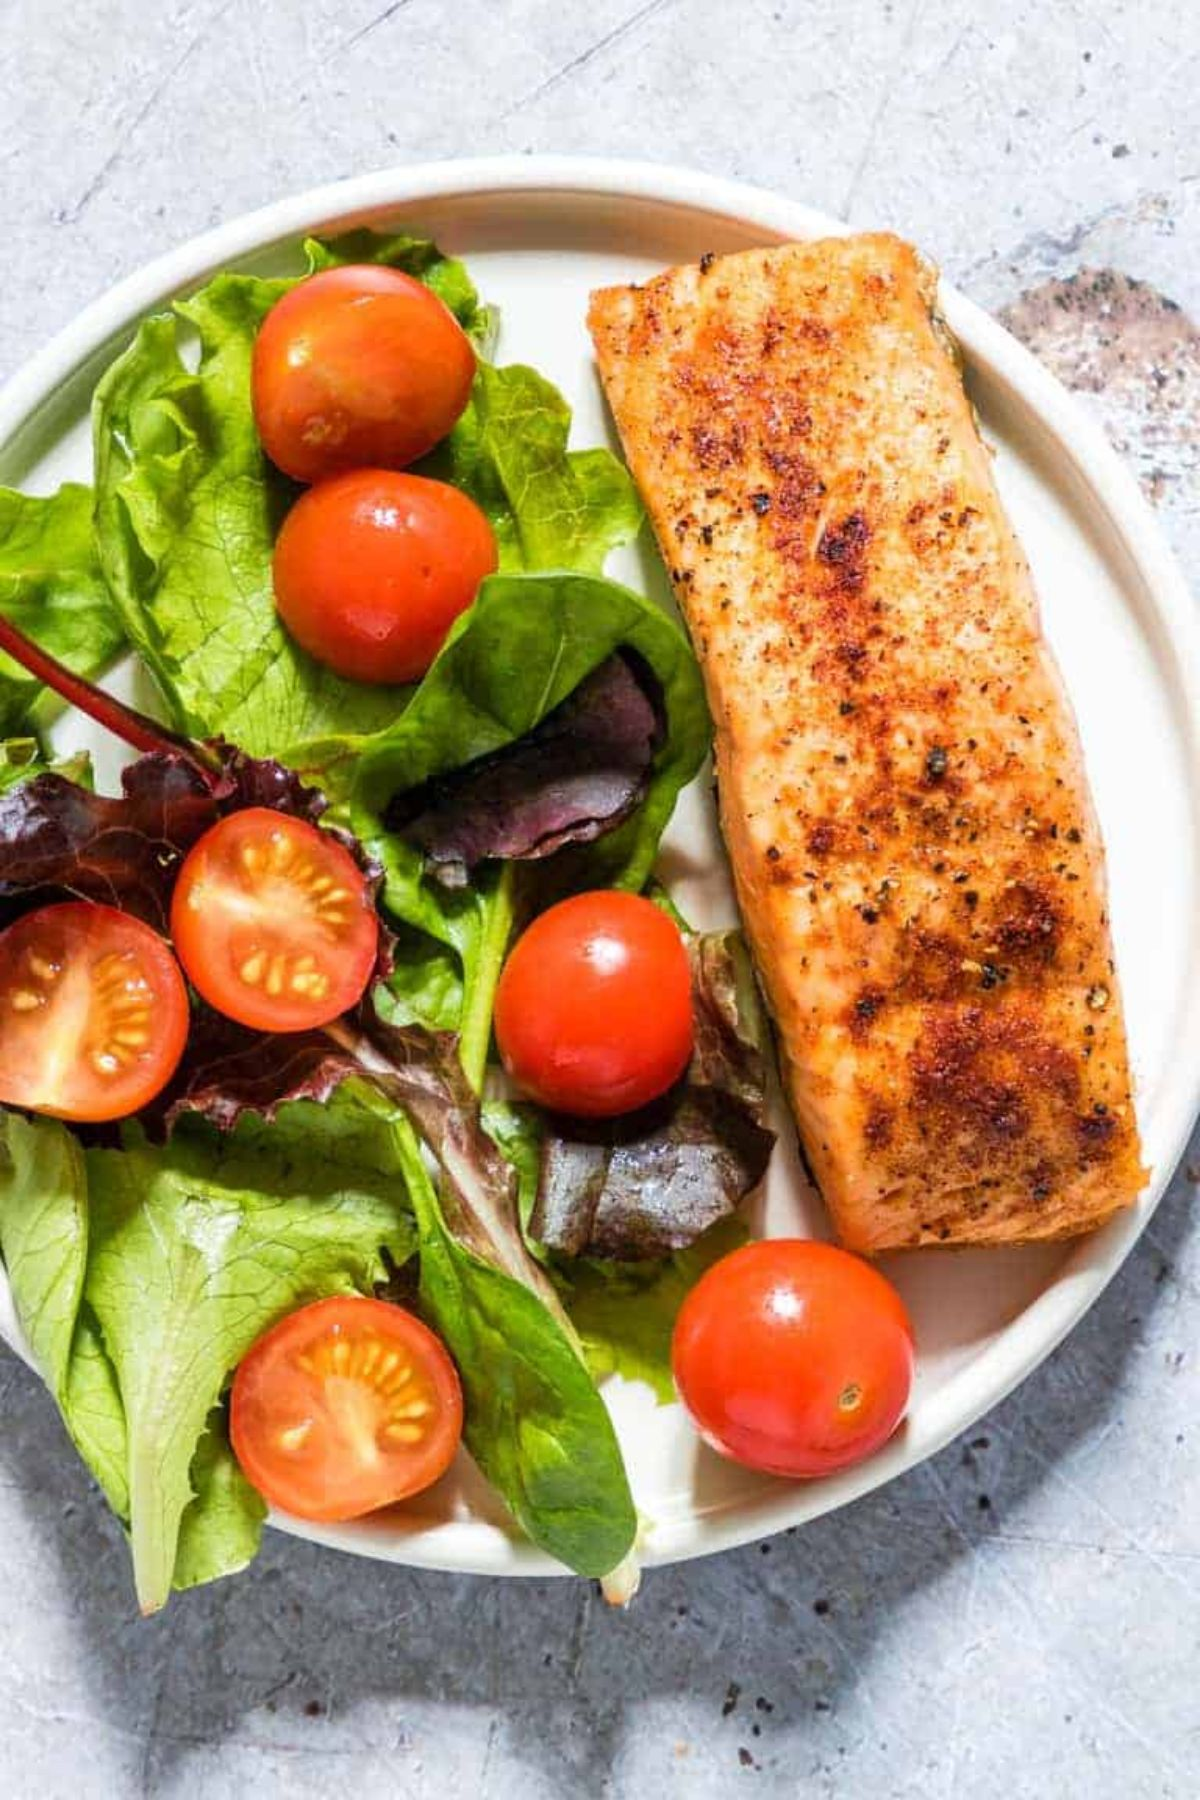 A round white plate holds a salmon fillet and a salad of green leaves and halved cherry tomatoes